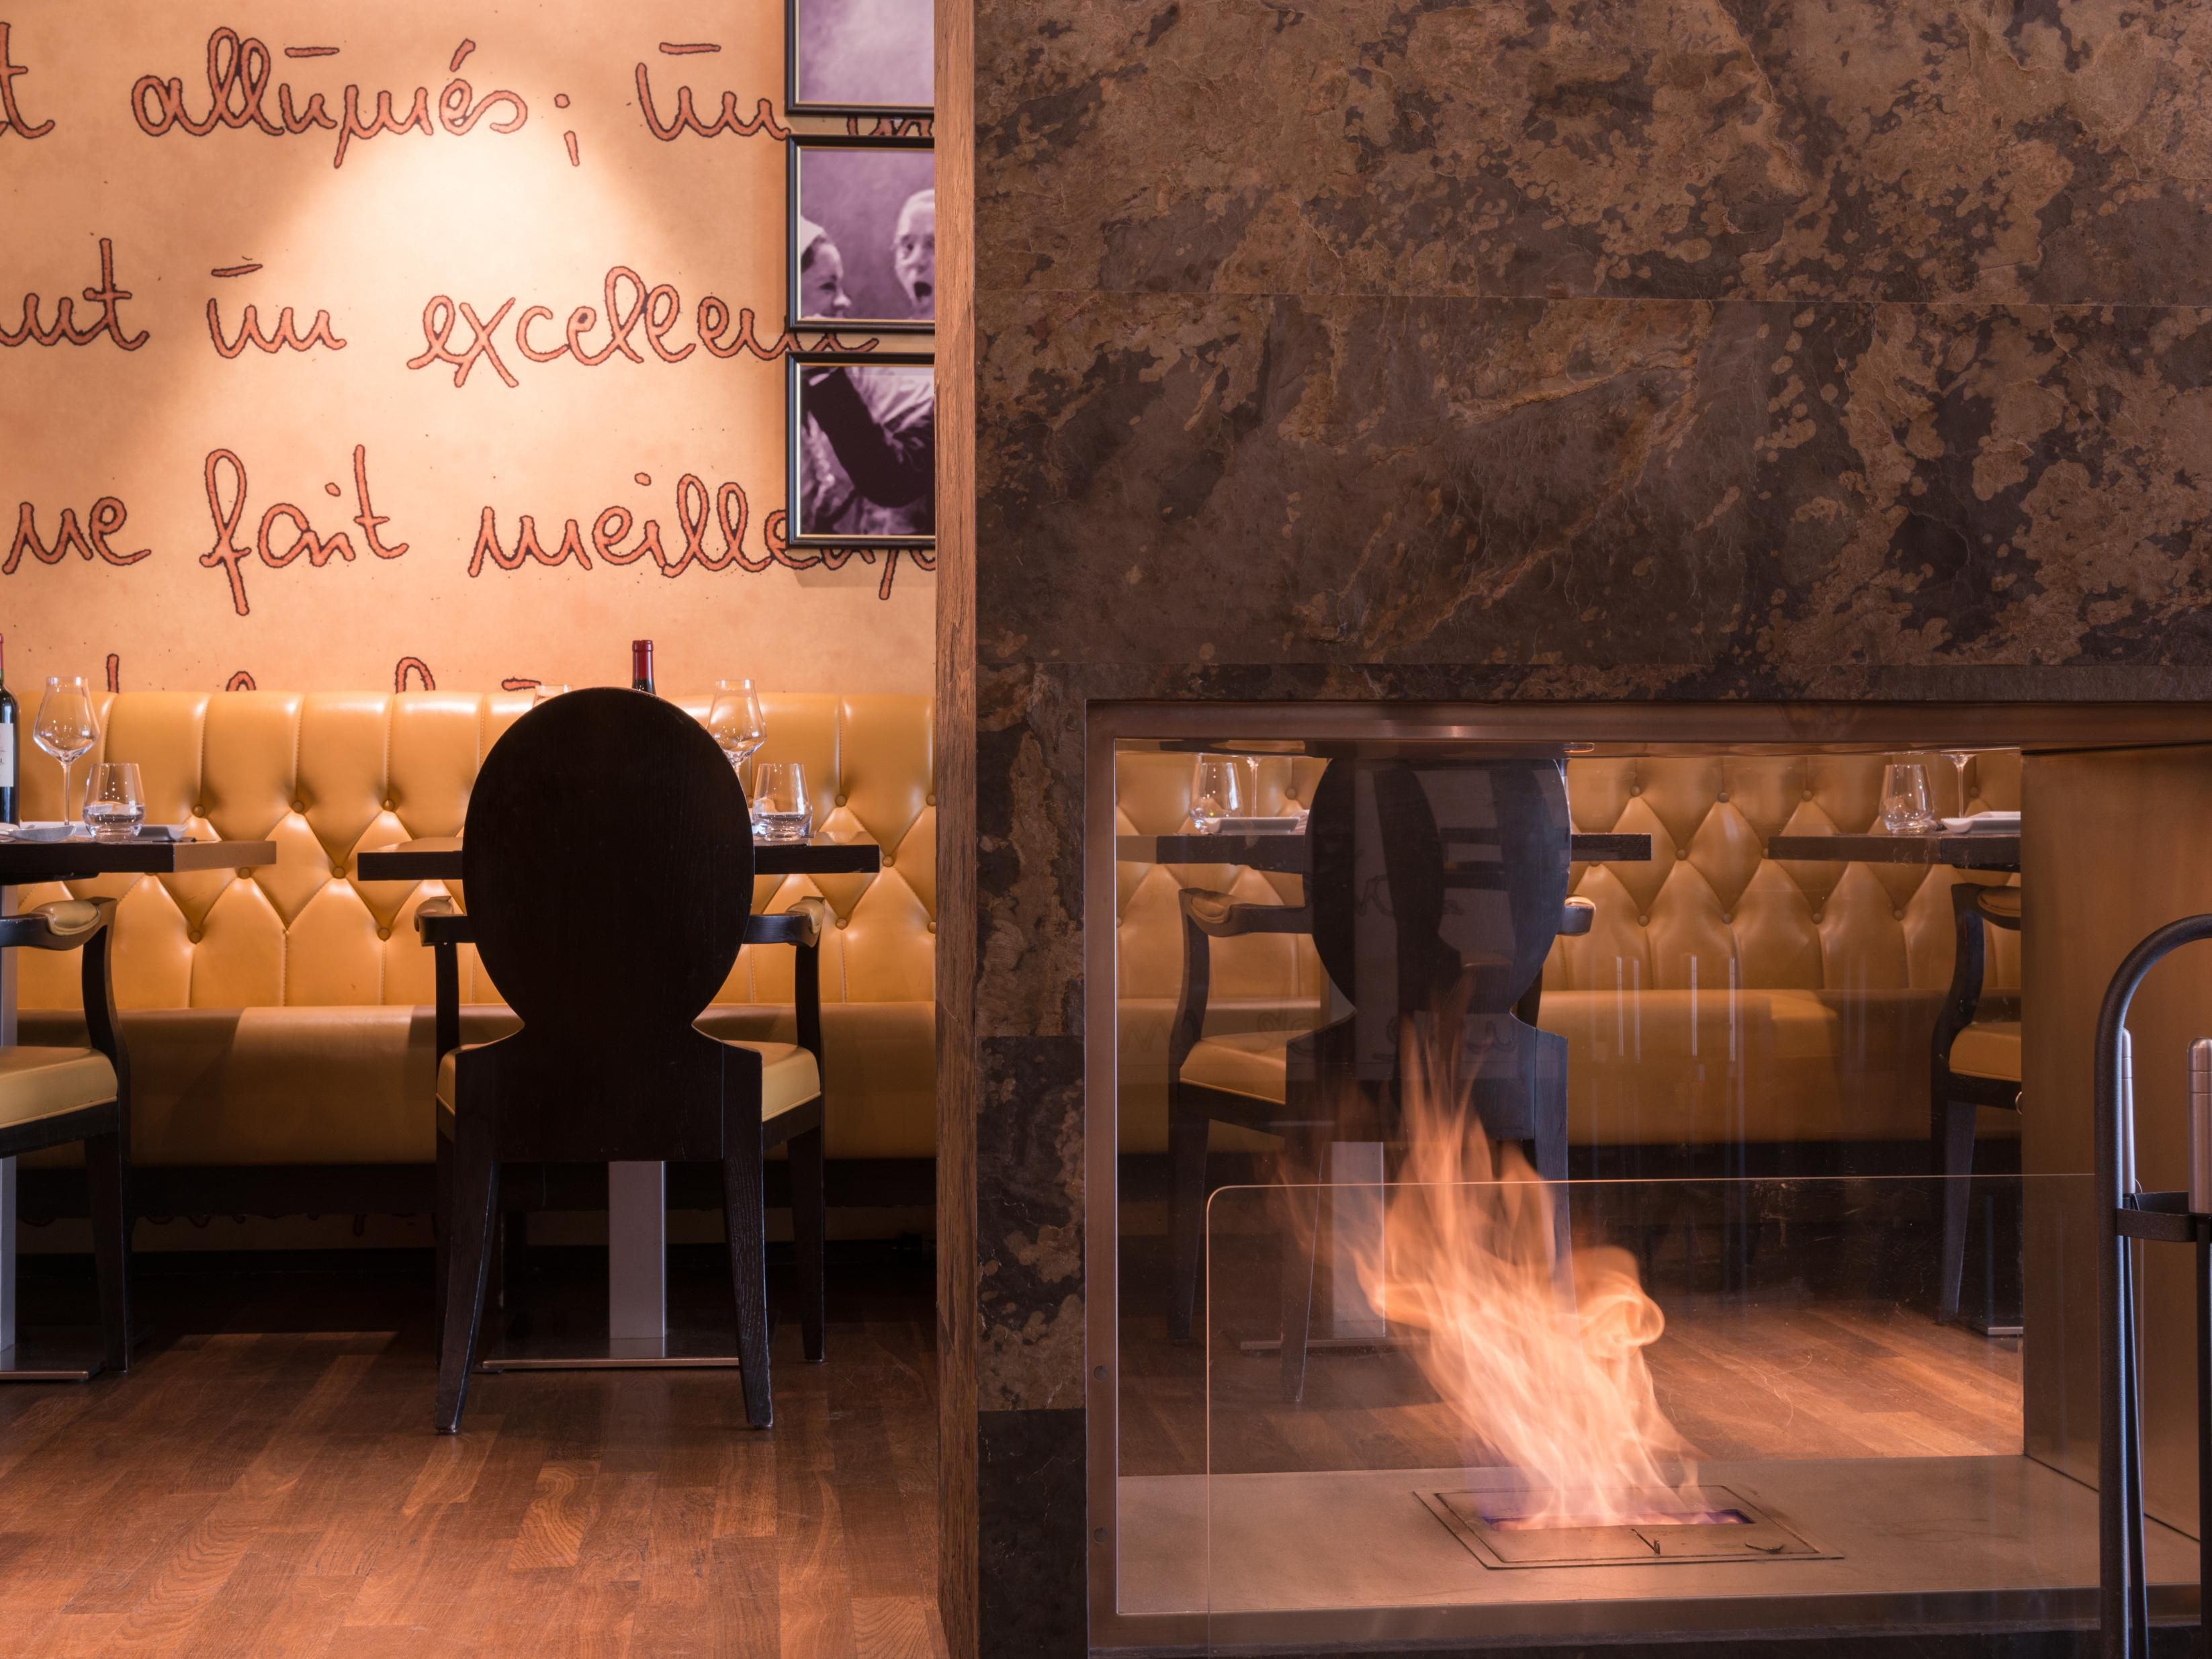 Awesome restaurant photo with champagne sur seine code postal - Code postal ivry ...